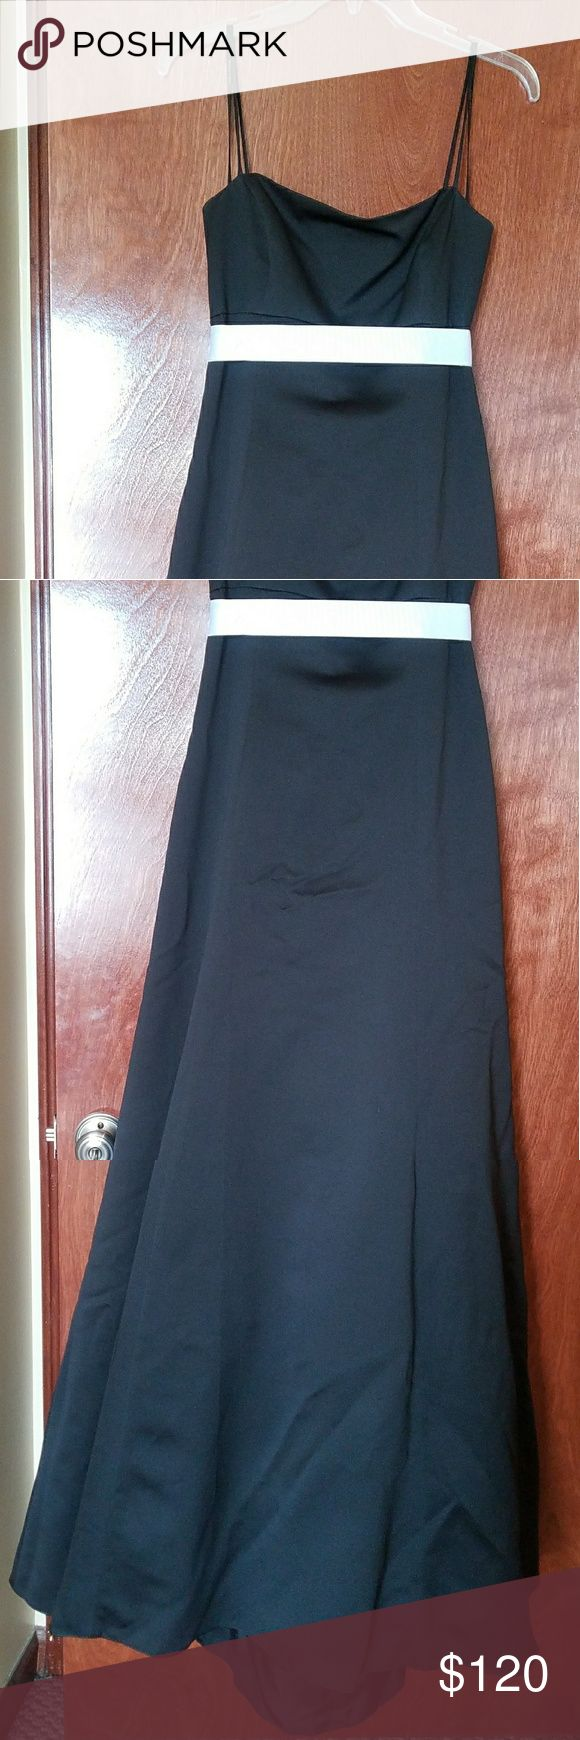 Vera Wang Formal Gown sz 8 Beautiful, elegant & classic authentic Vera Wang soft black formal gown w/ white sash sz 8. Perfect for a black tie event or prom. Only worn once, excellent condition, has been in storage, clean, smoke free home.  FYI: this app made me crop the photos, I can send additional pics if you'd like, please inquire.  Make an offer!  Accepts PayPal, Venmo & Popmoney. Vera Wang Dresses